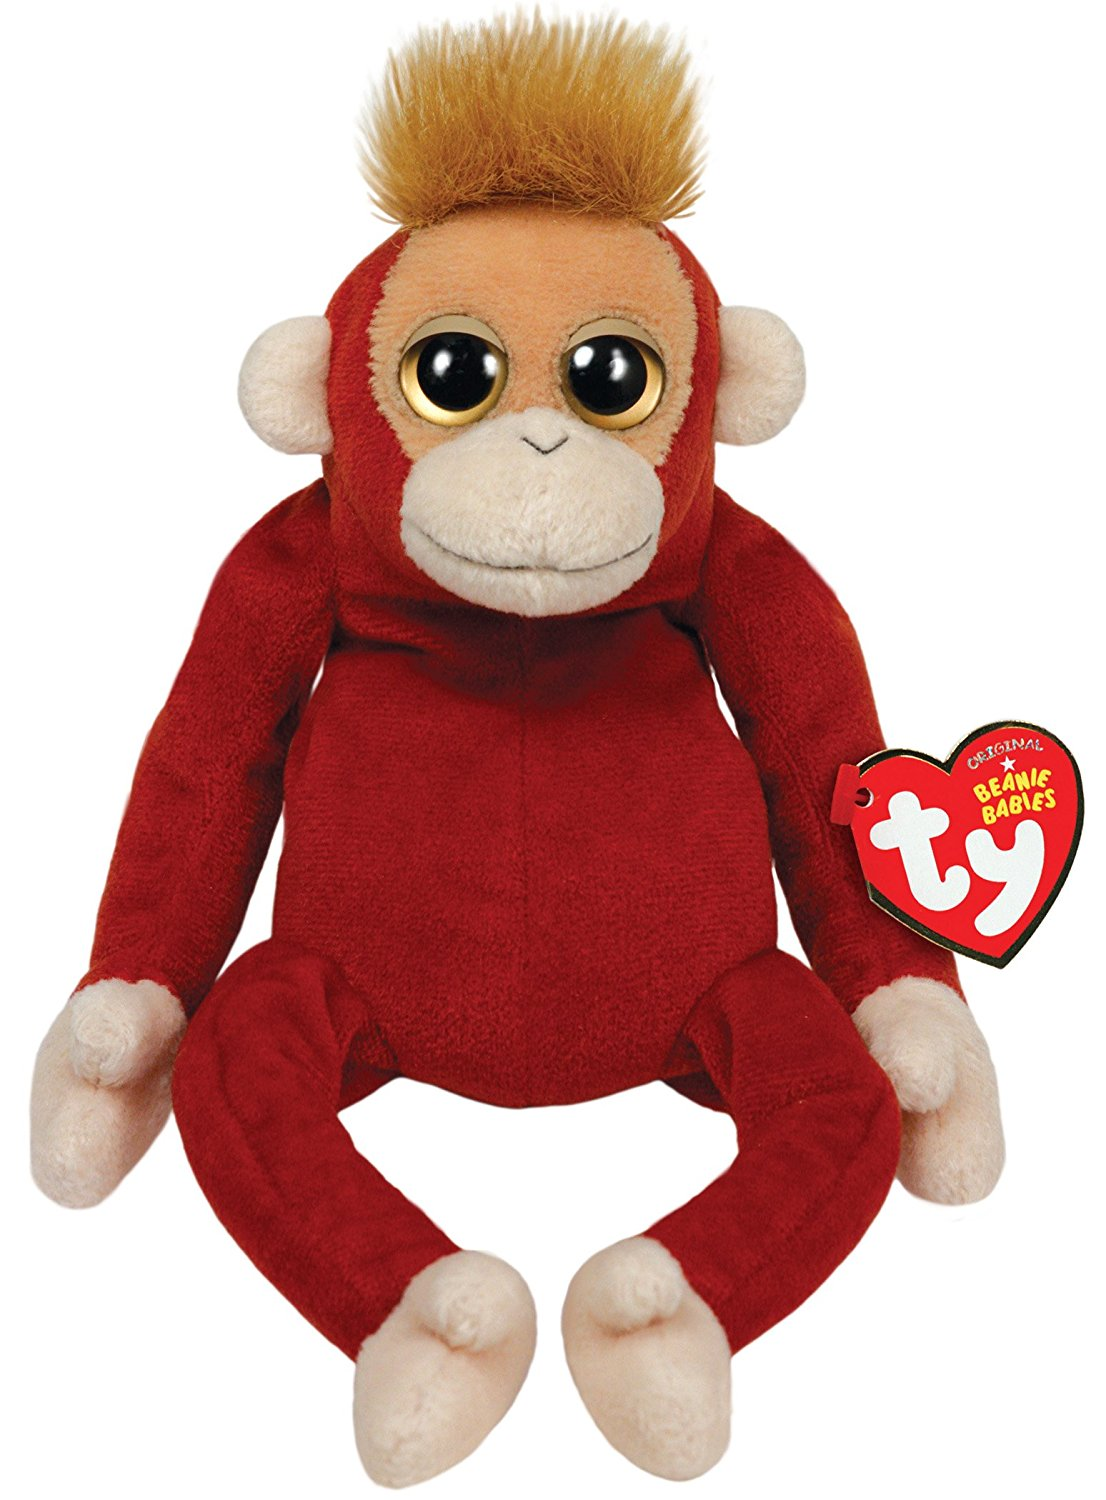 Buy Ty Beanie Babies Schweetheart The Baby Orangutan Plush Toy